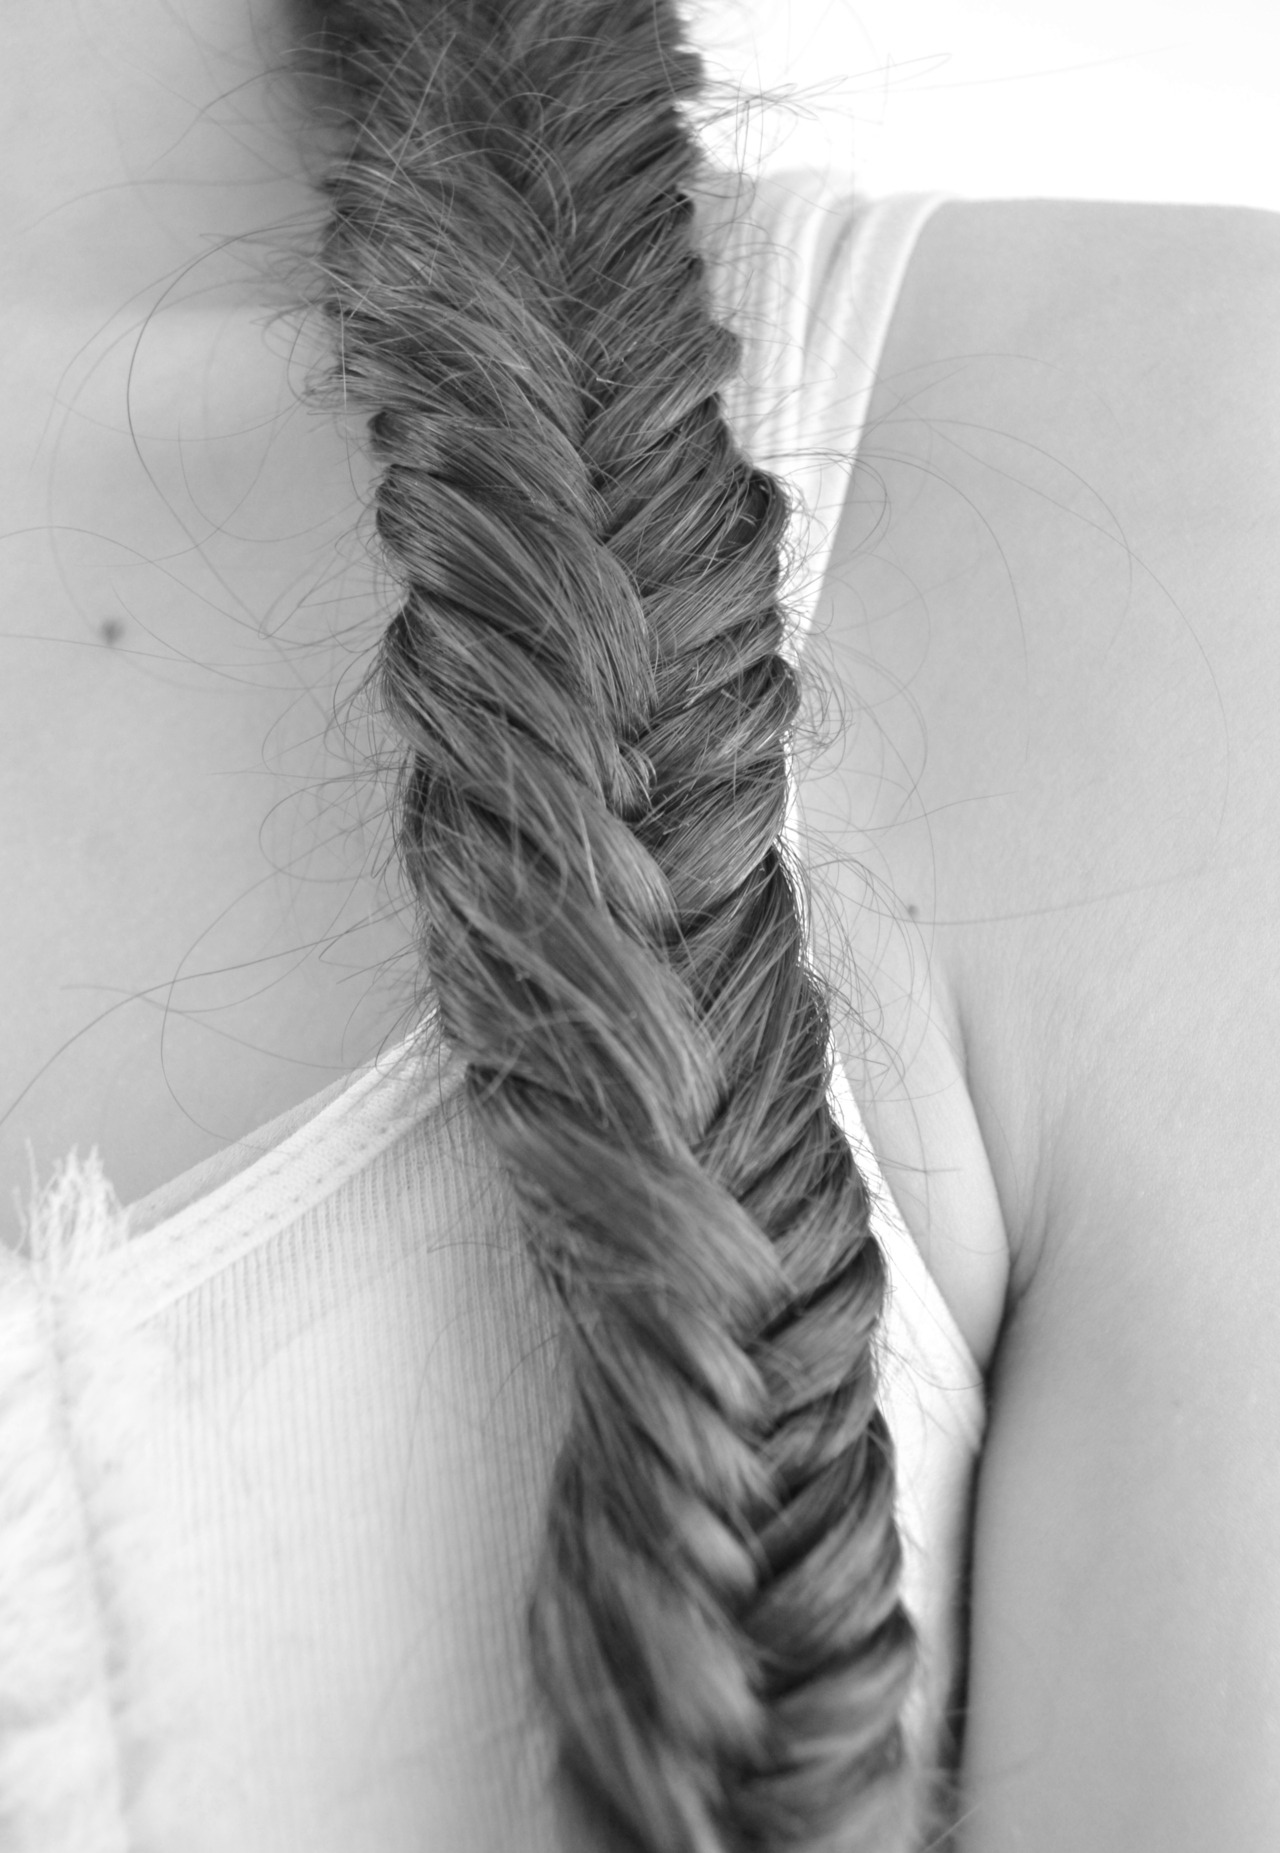 e-ssenc-e:  petite-brunette:  My hair today! © please don´t change the source!  pretty!